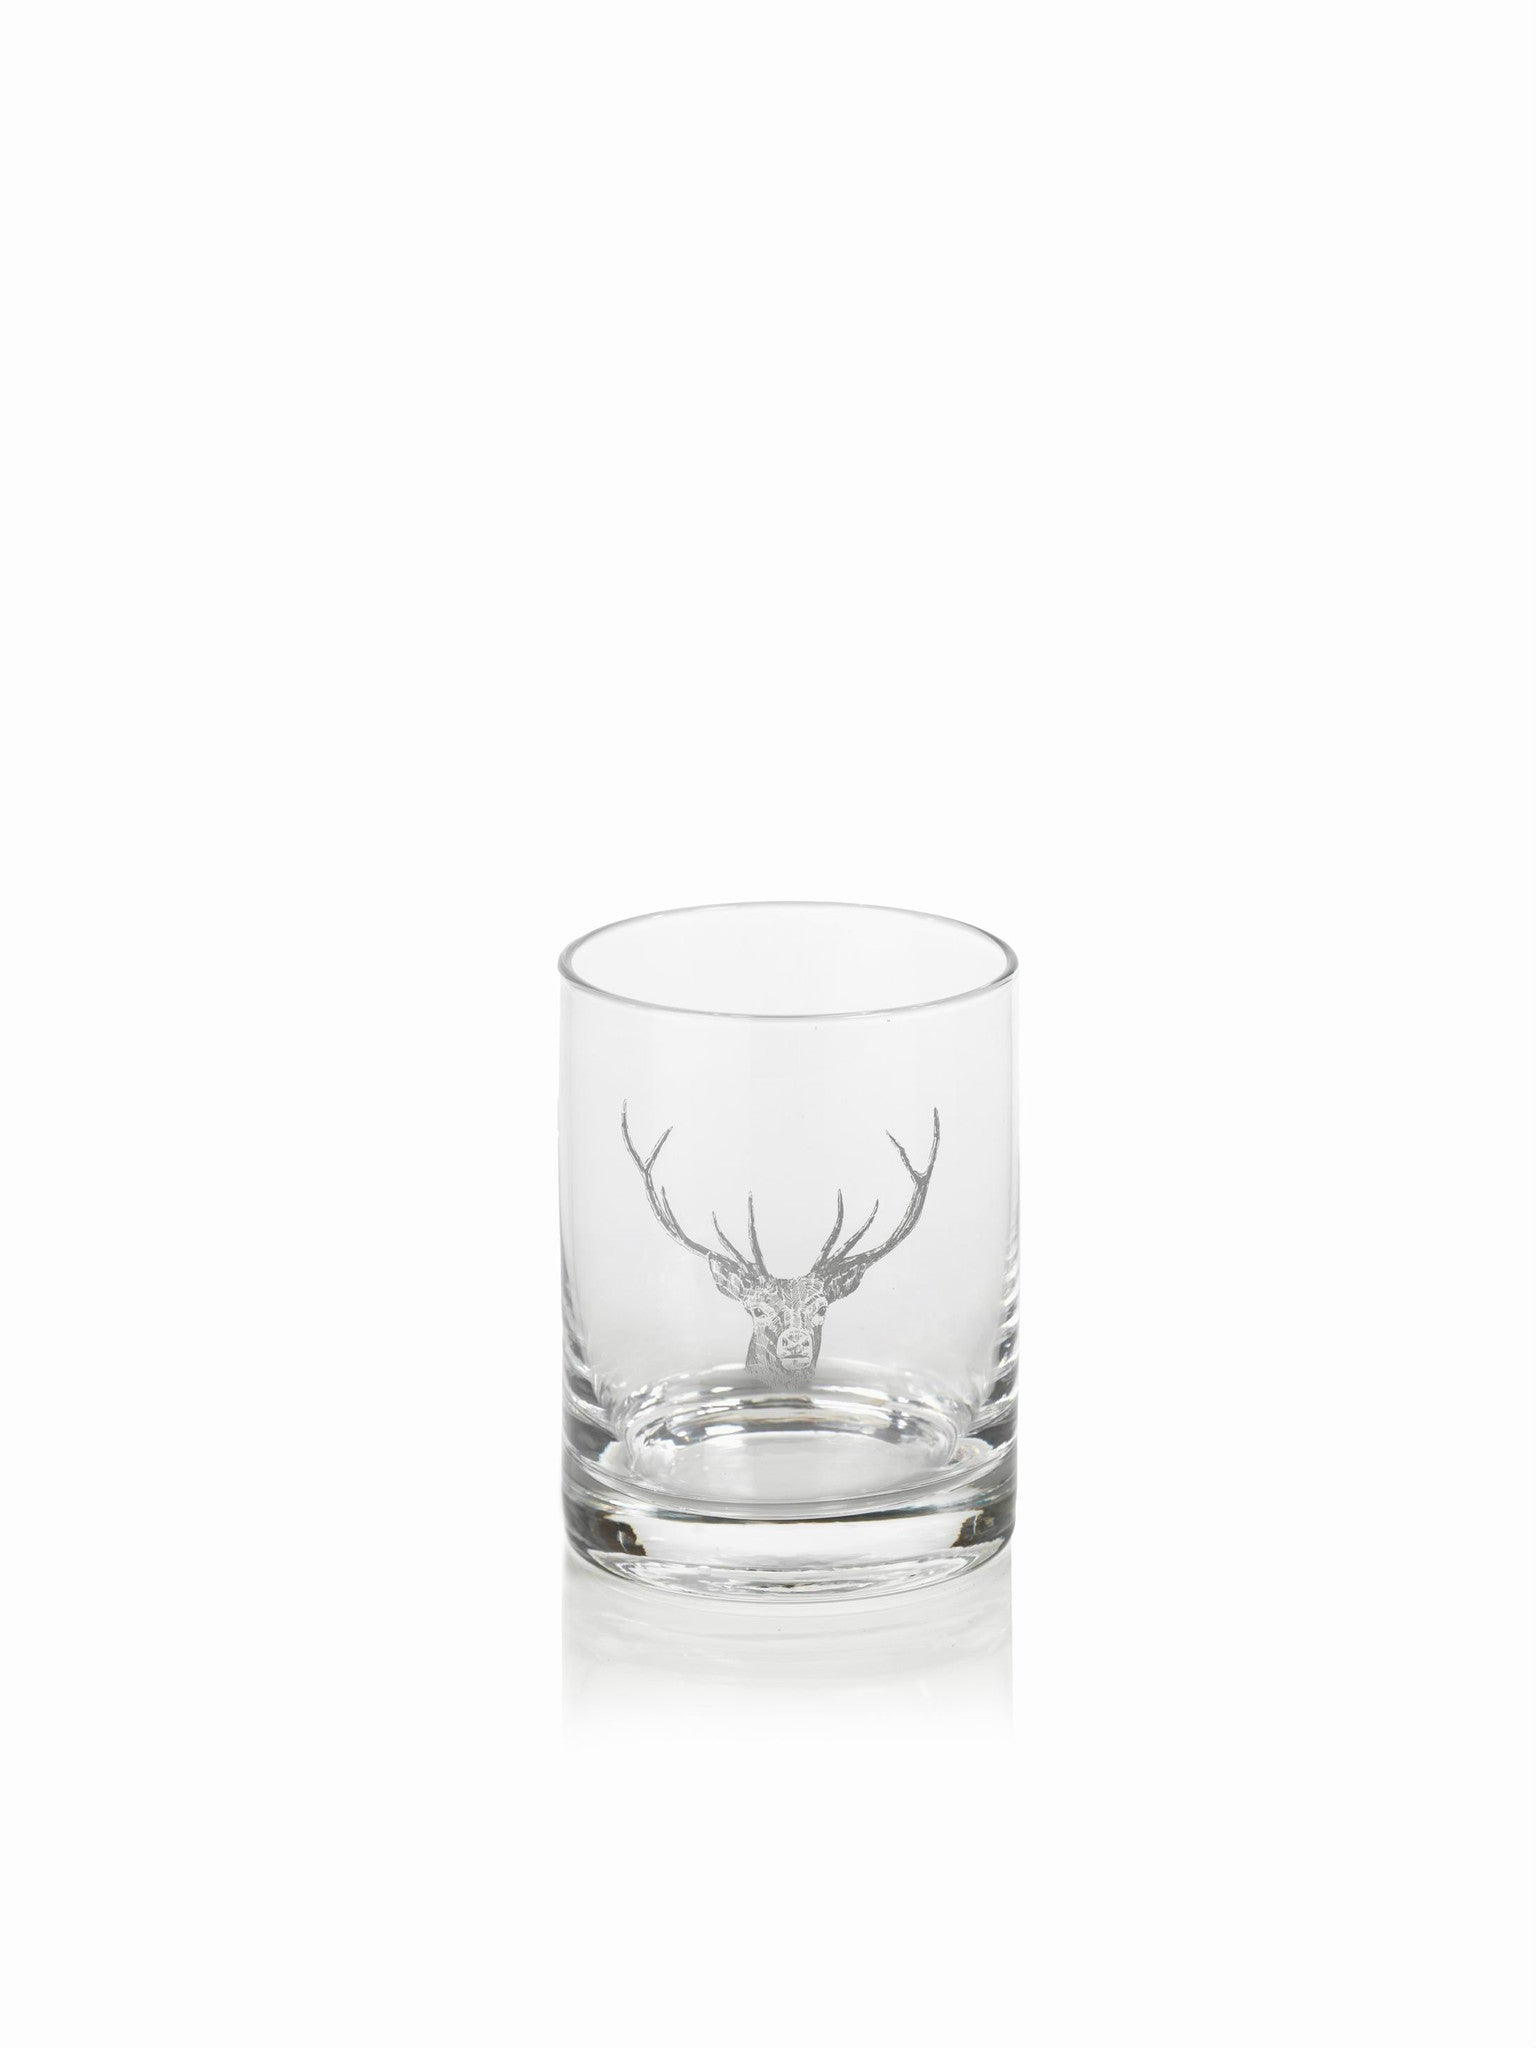 Stag Head Decanter and Glassware - DOF Glasses - Set/6 - CARLYLE AVENUE - 3